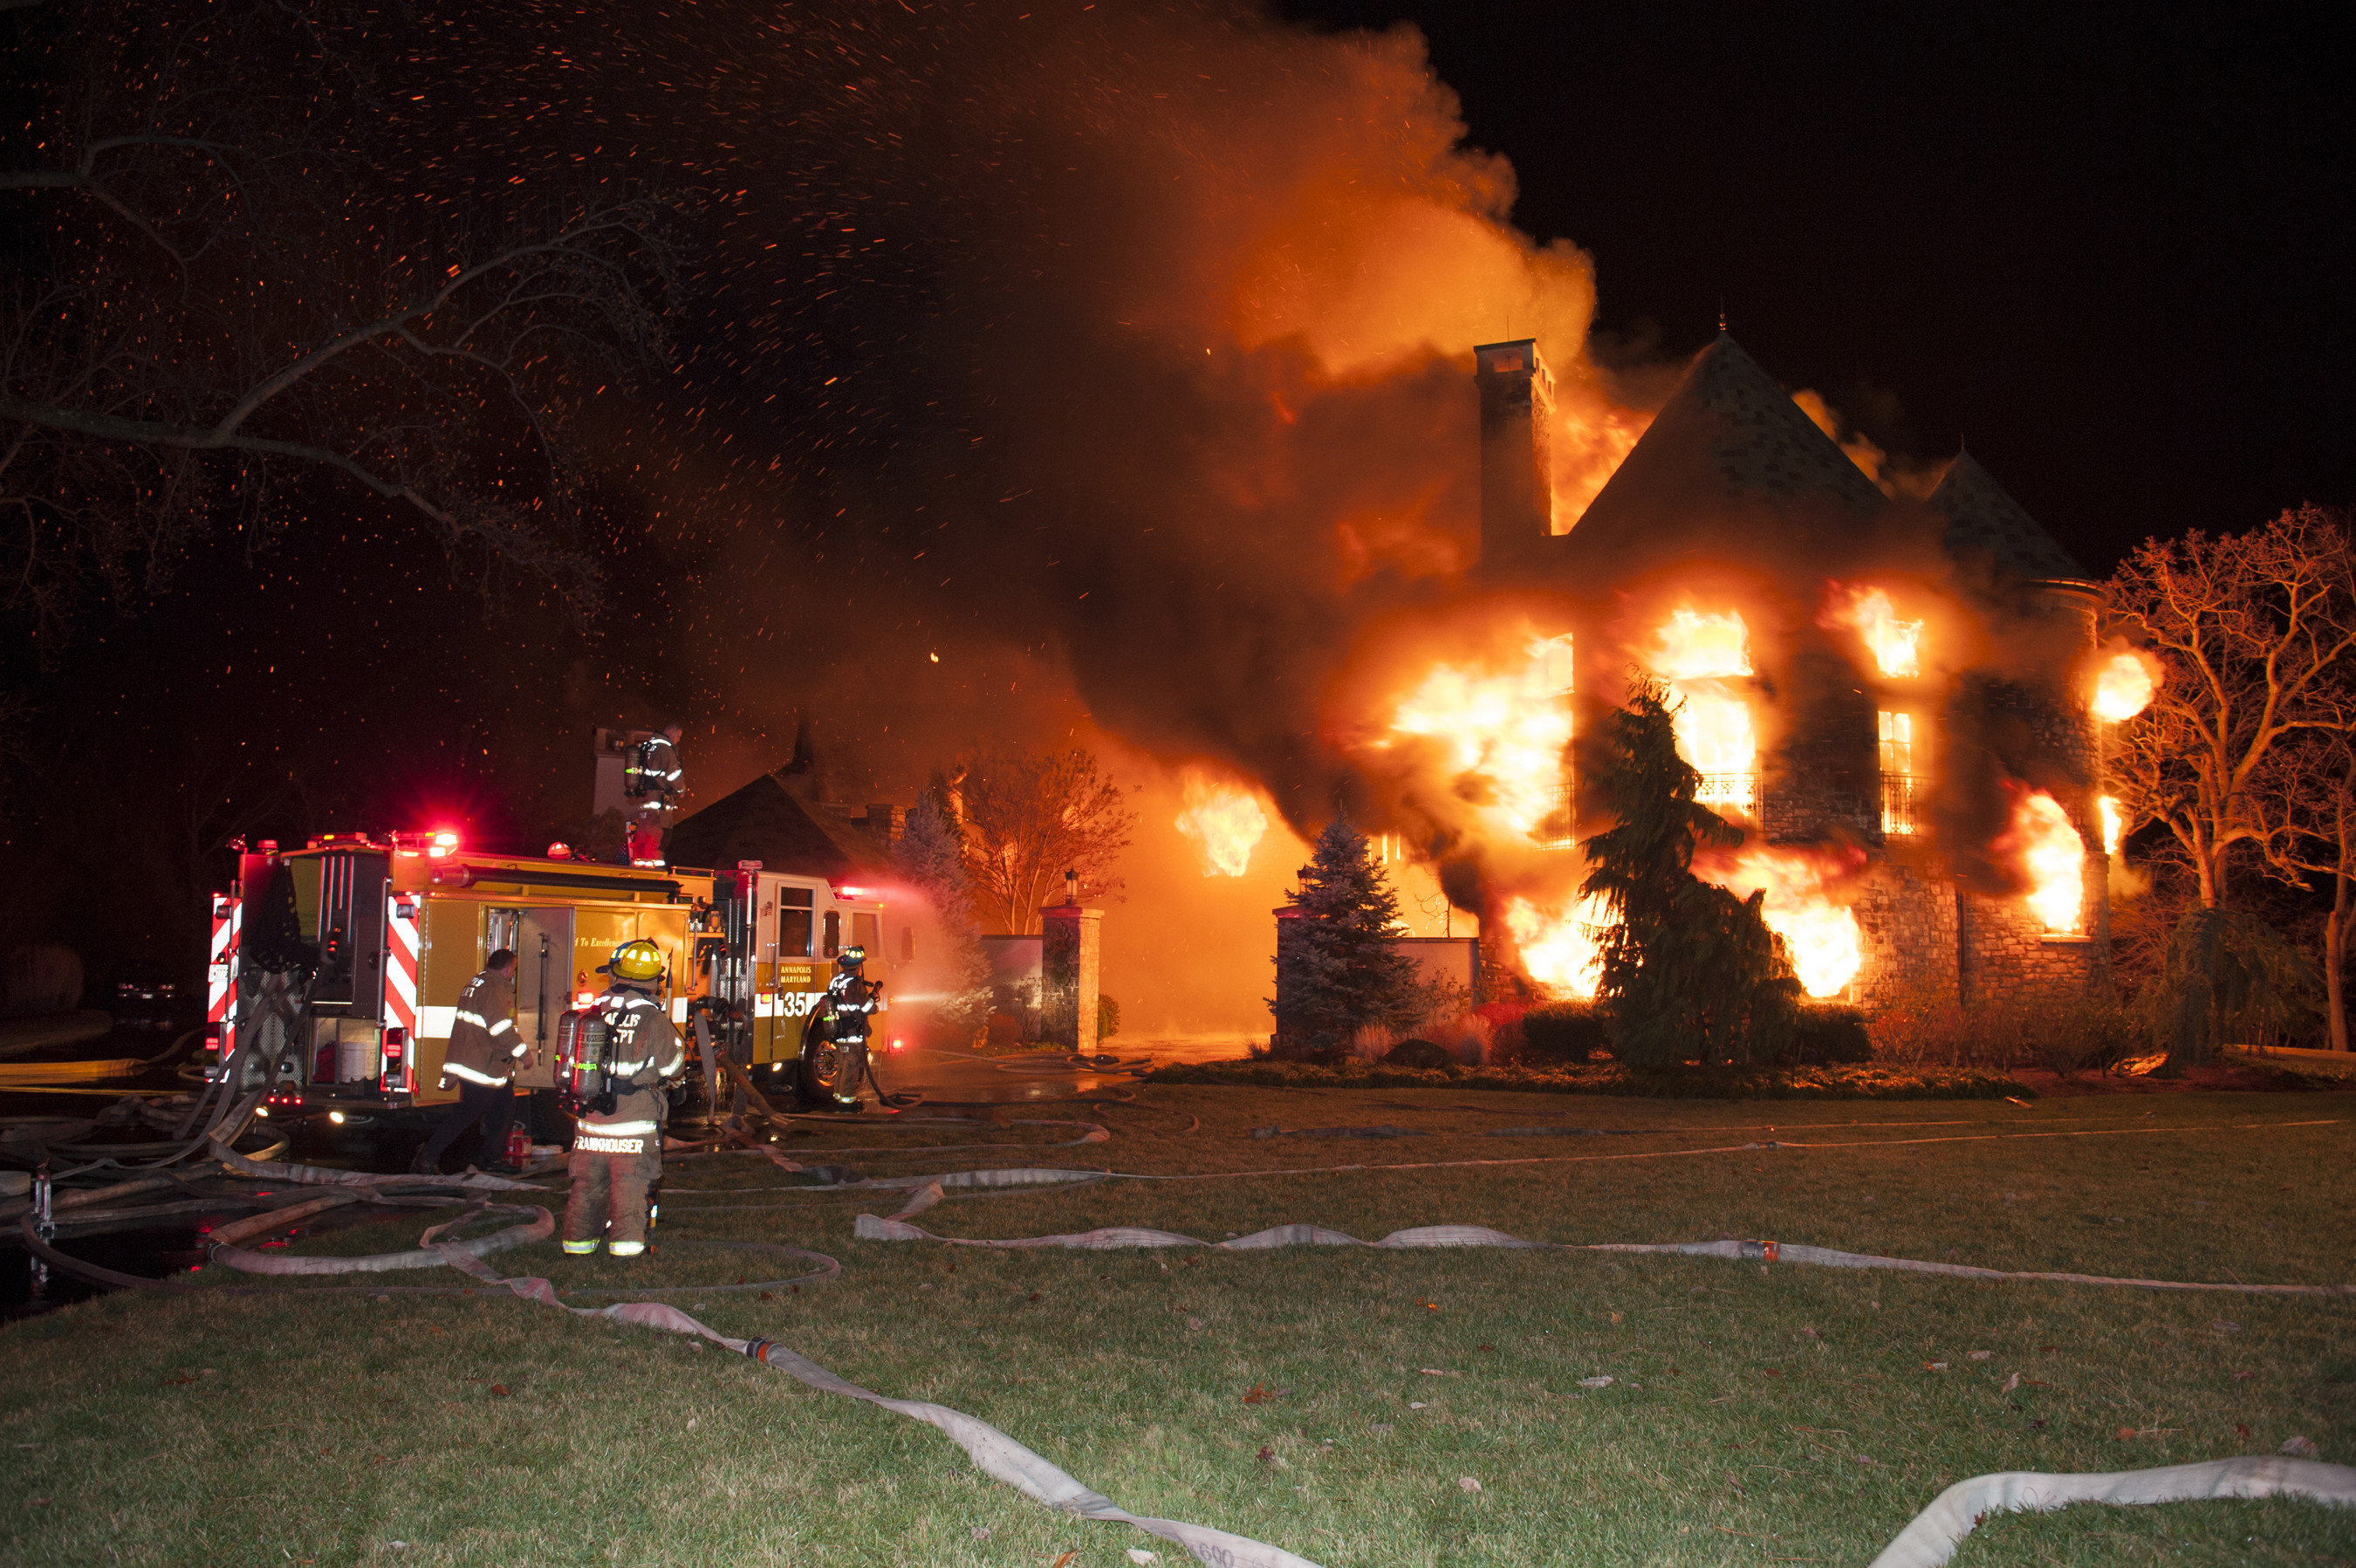 ATF to hold test burns on Christmas trees after mansion fire